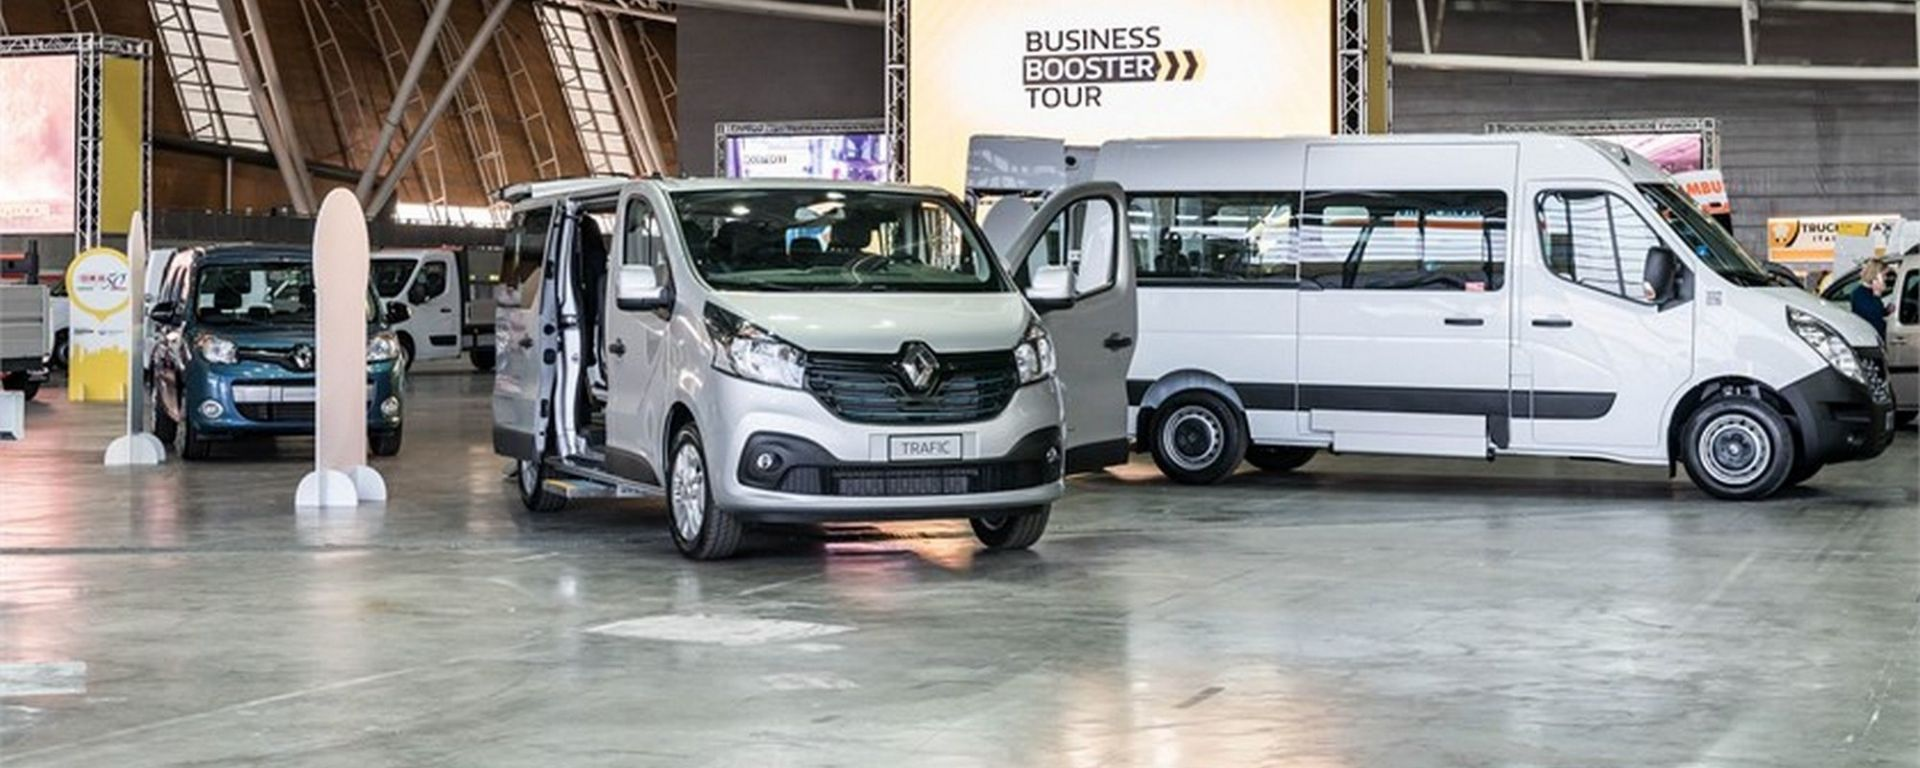 Renault Business Booster Tour, al via l'edizione 2018